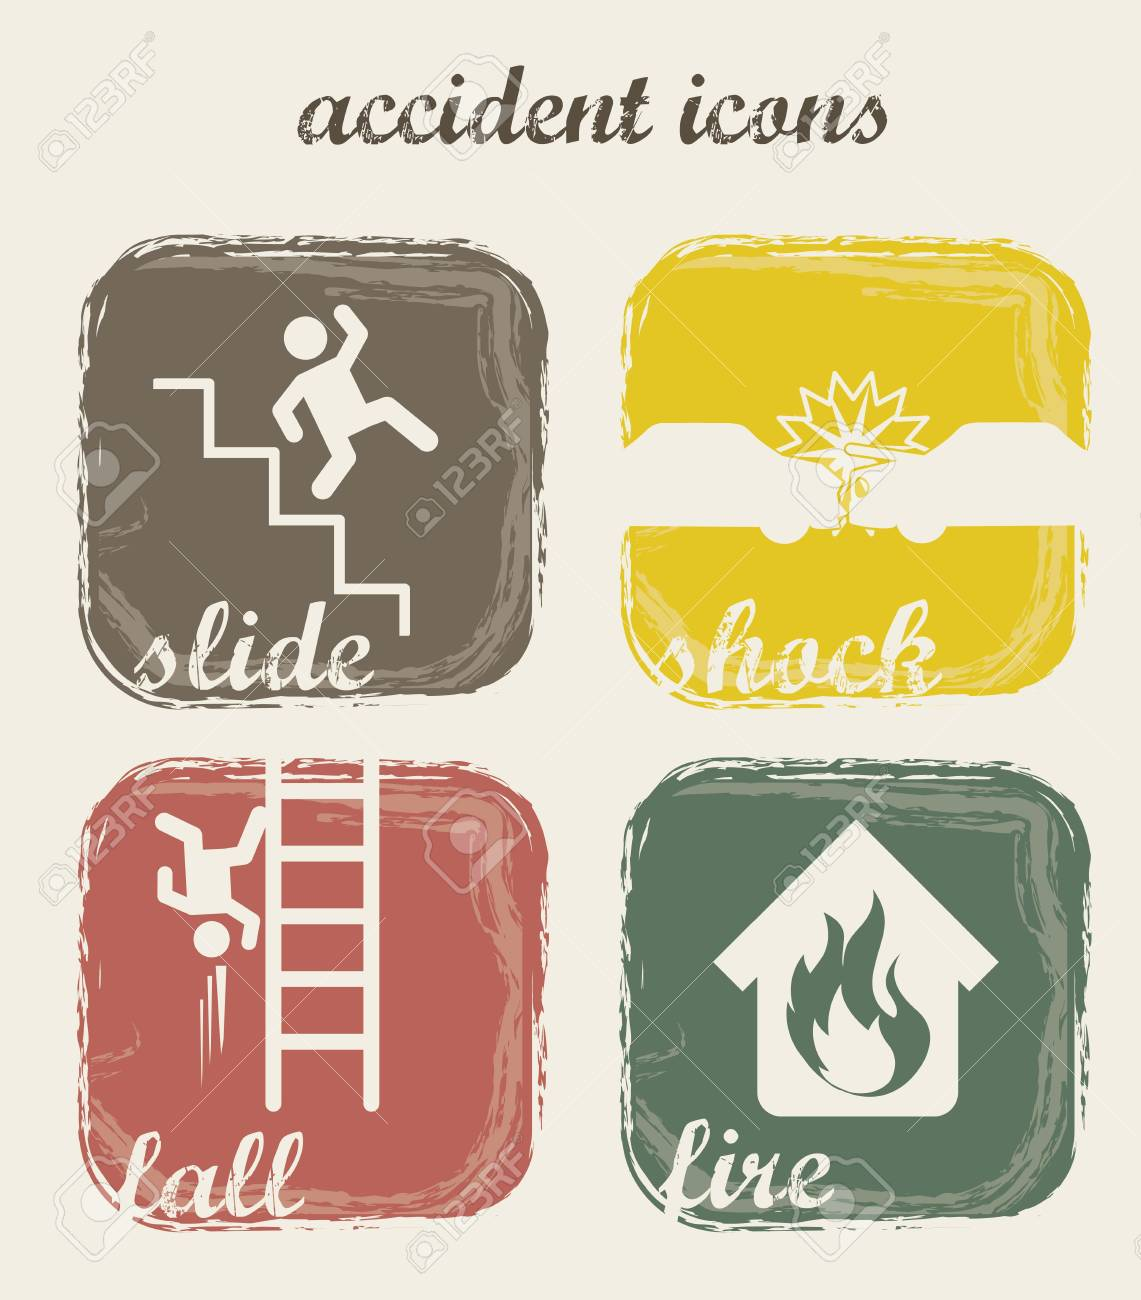 accident icons over beige background. vector illustration Stock Vector - 16703116